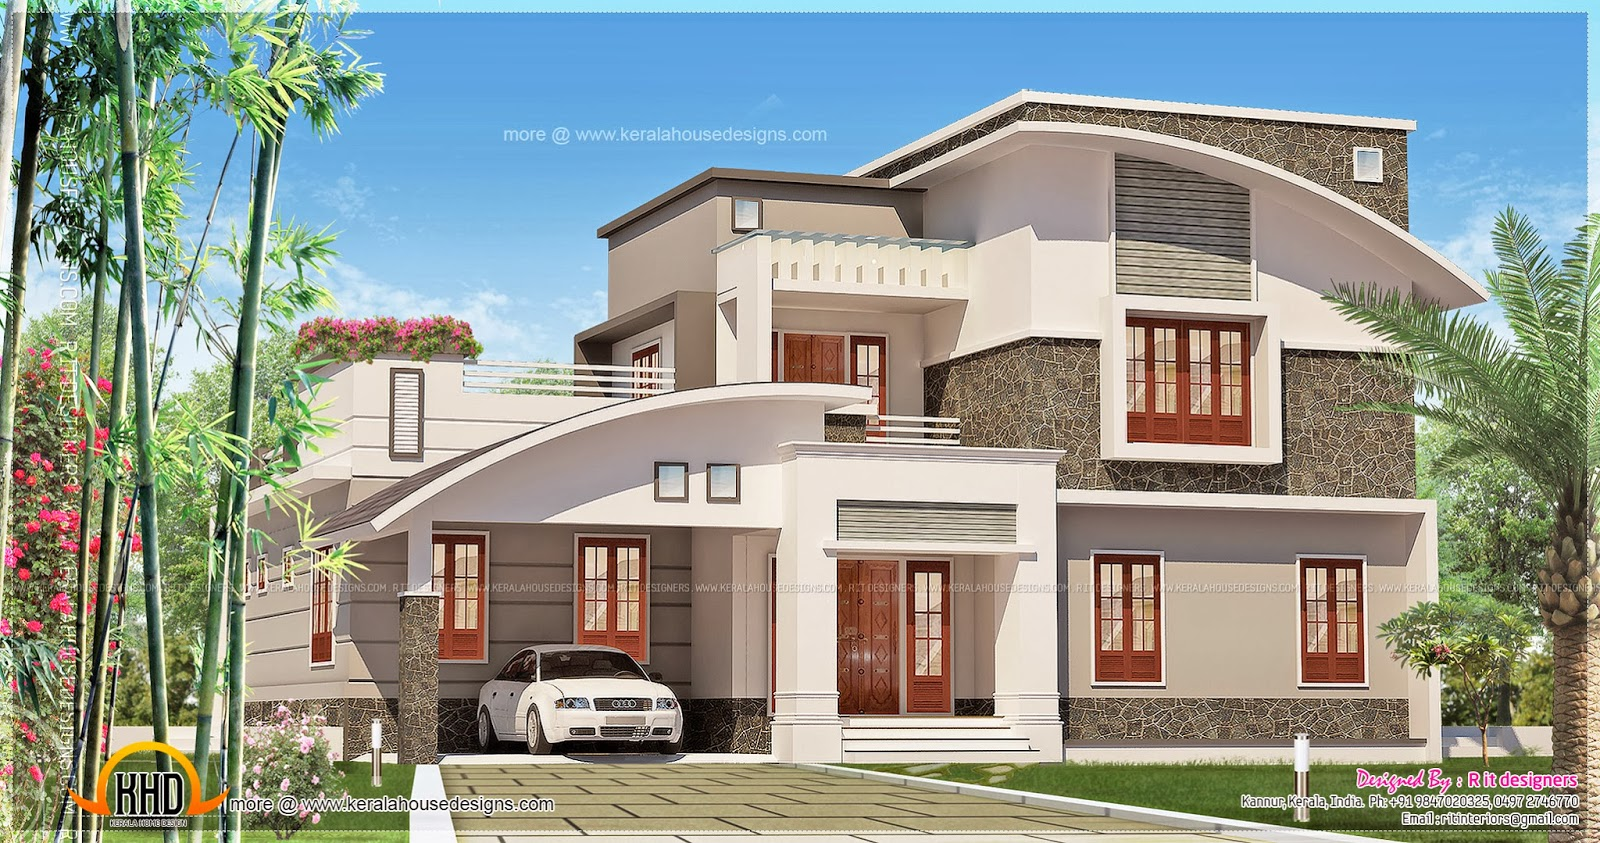 3 bedroom contemporary mix house exterior kerala home New model contemporary house